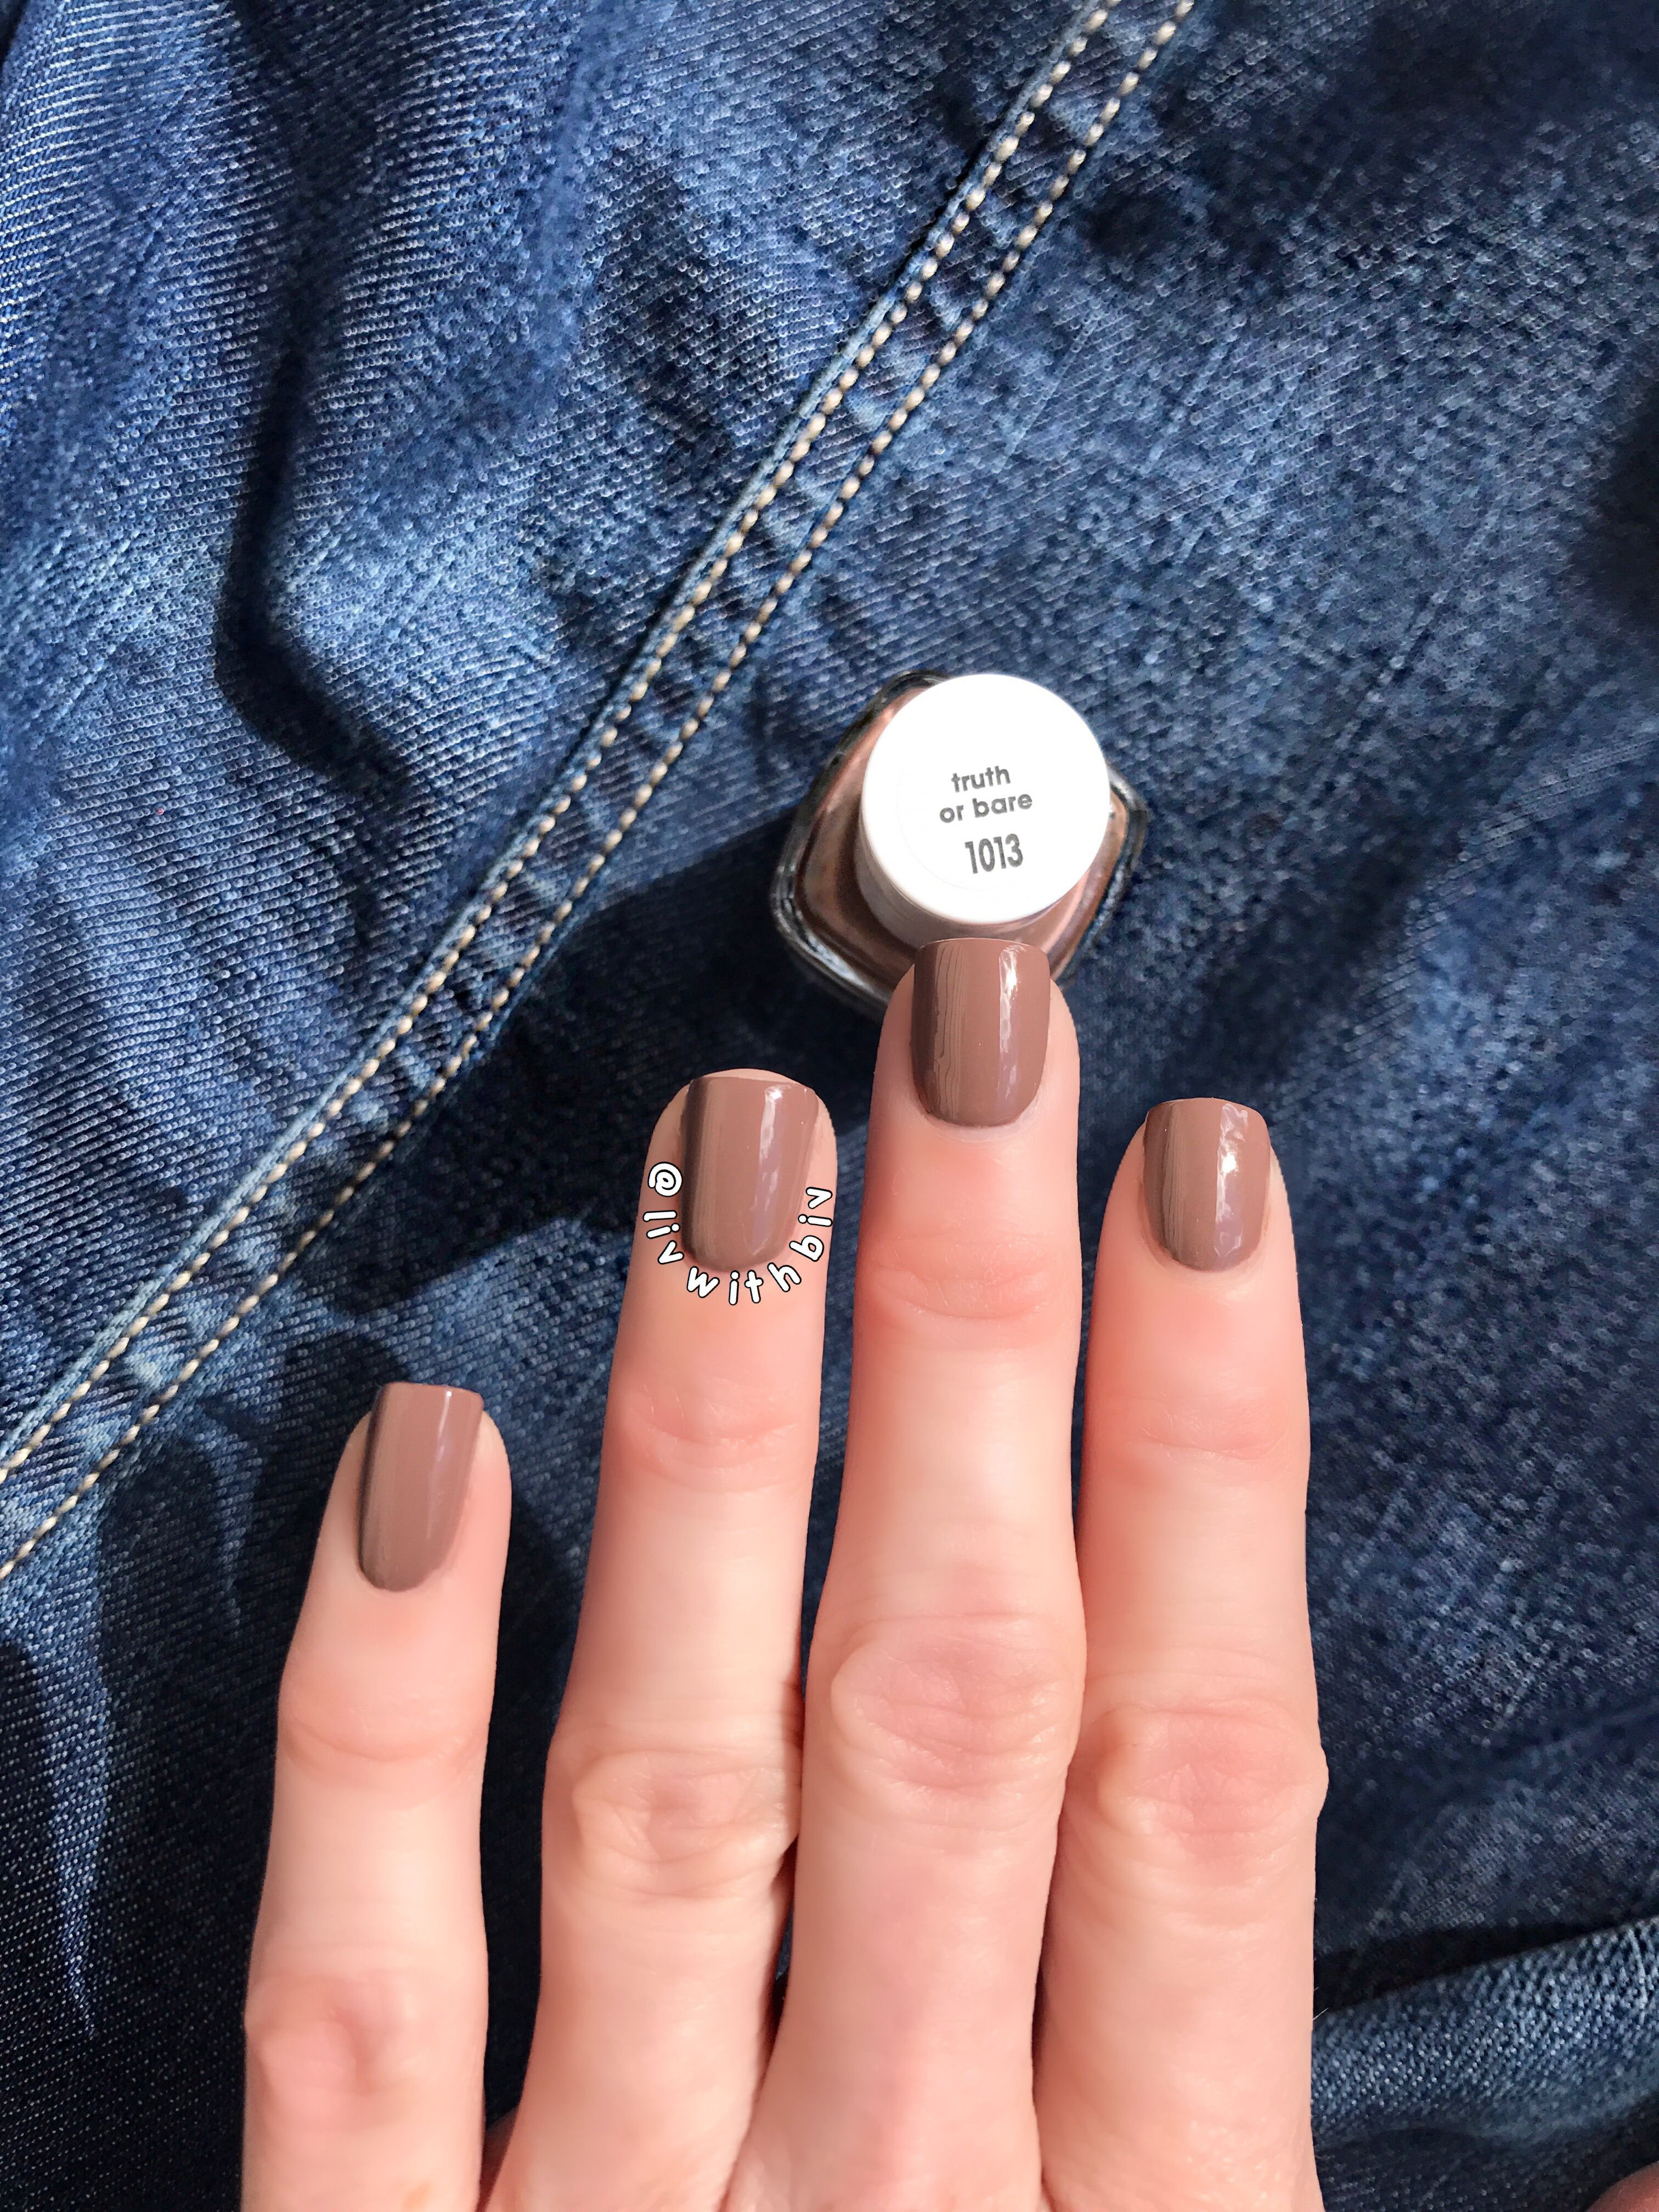 Essie \'Truth or Bare\' from the Wild Nudes Collection is a \